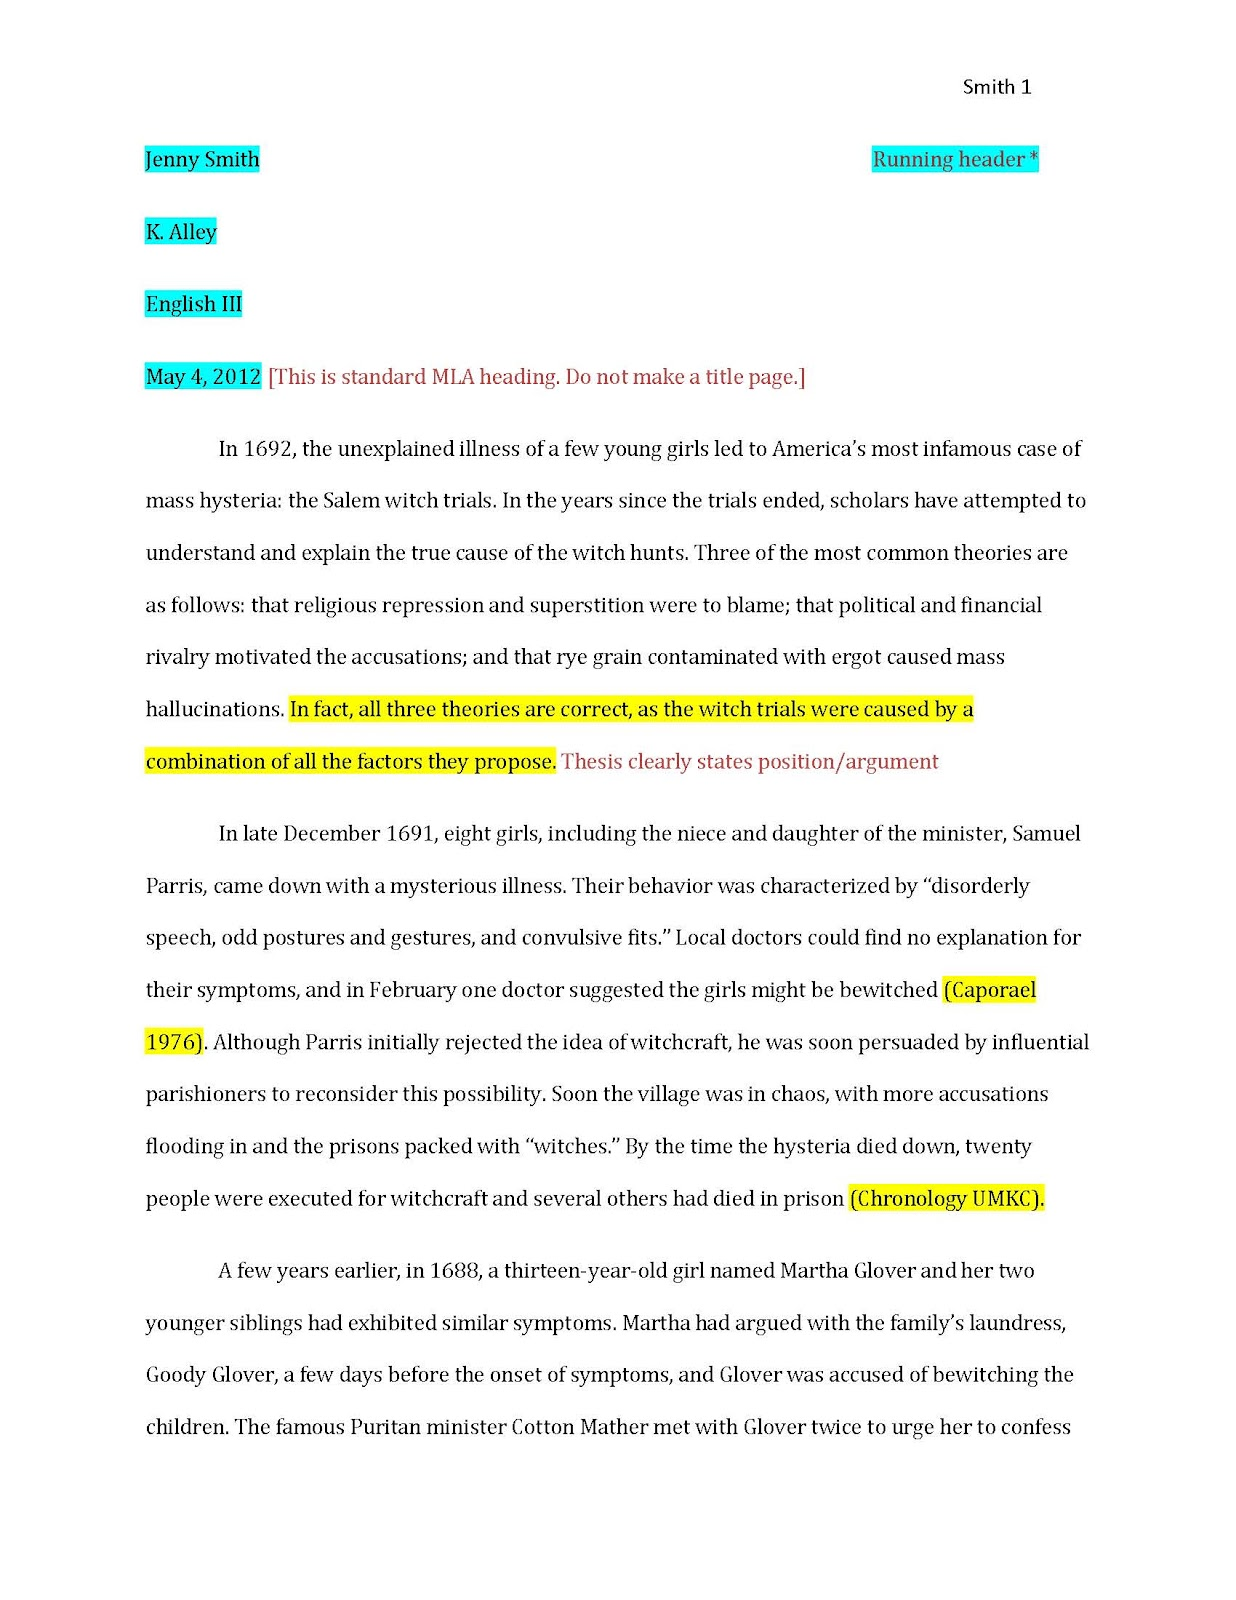 010 How To Cite In Essaypaper Page 1 Staggering Essay Images Text Harvard Style Website Apa Mla Full